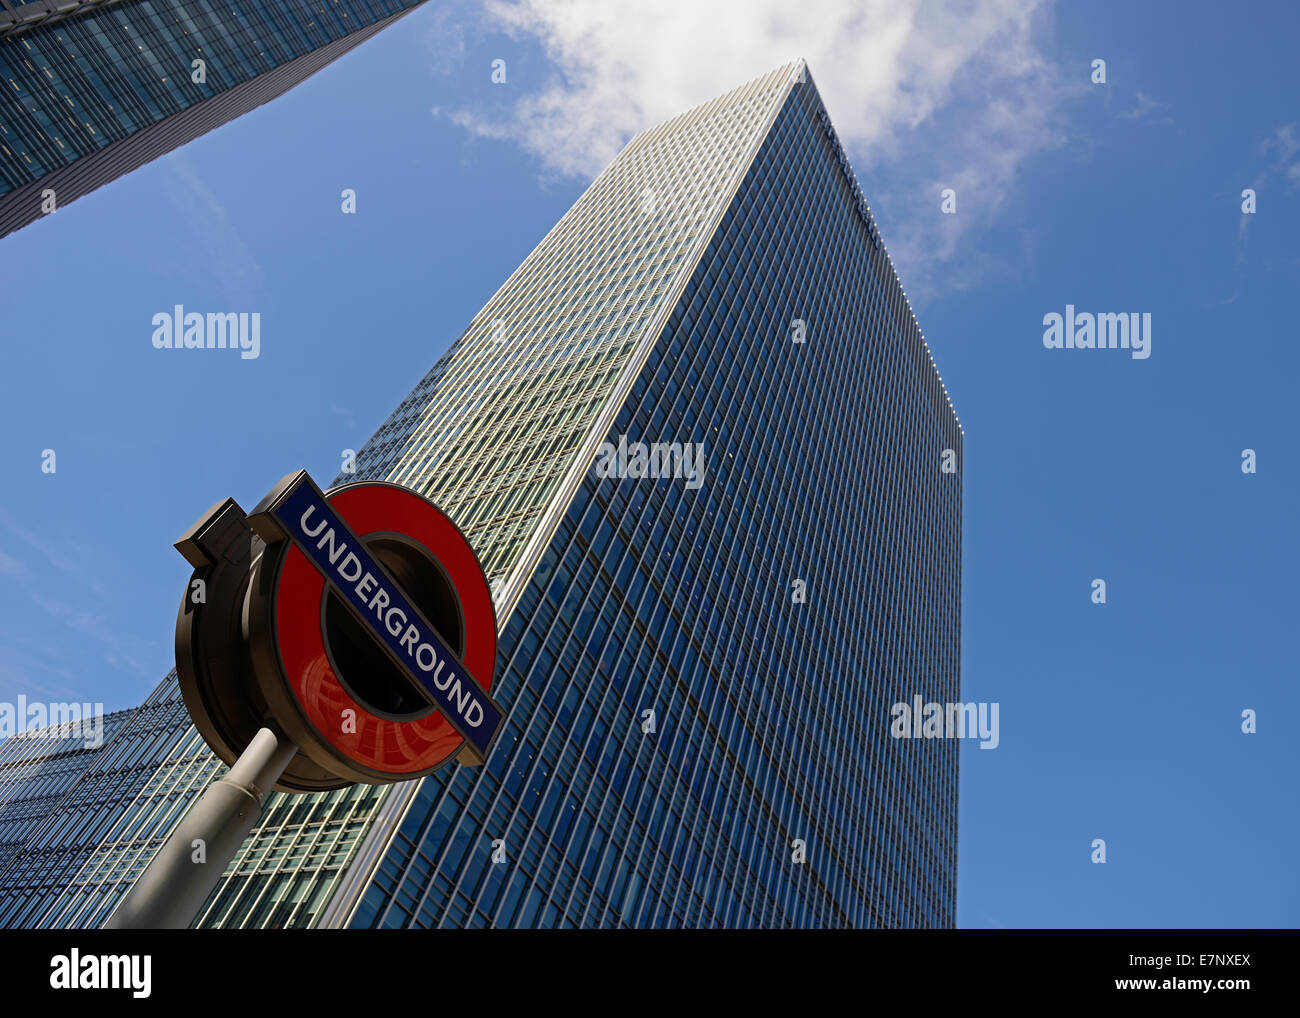 London Underground Station Sign and Office Buildings, Bank Street, Canary Wharf, London, UK. - Stock Image